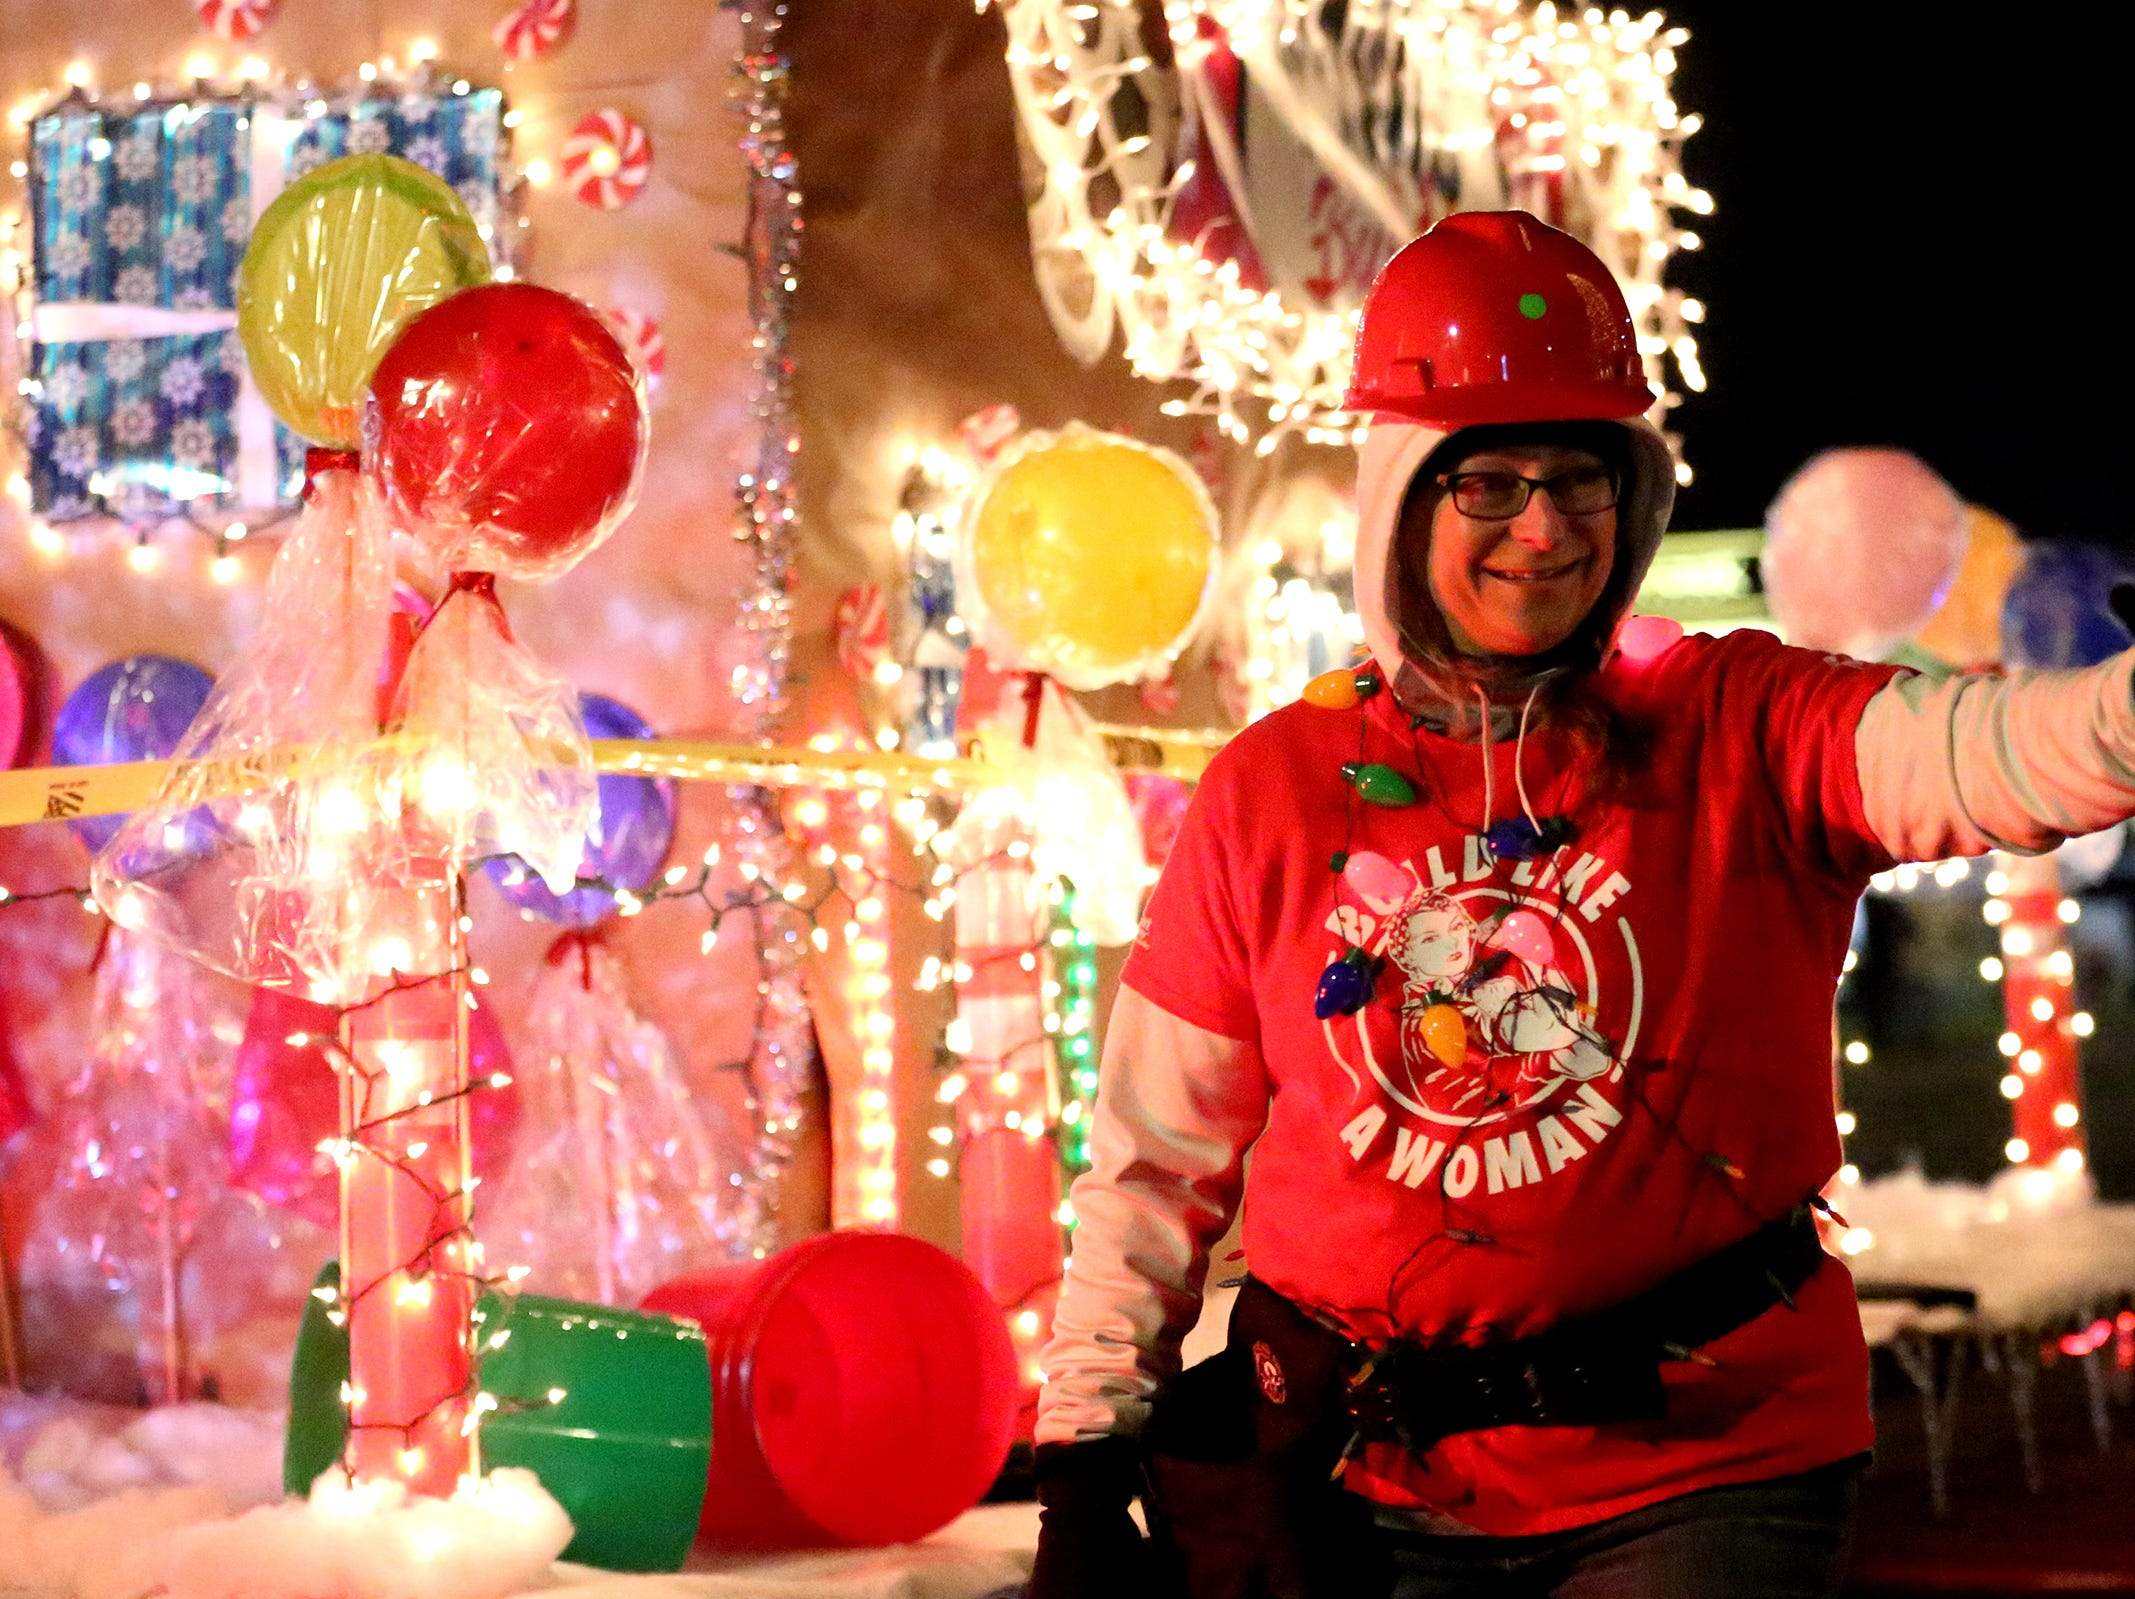 Members of the National Association of Women in Construction showcase their float during the Keizer Holiday Lights Parade in Keizer on Saturday, Dec. 8, 2018.